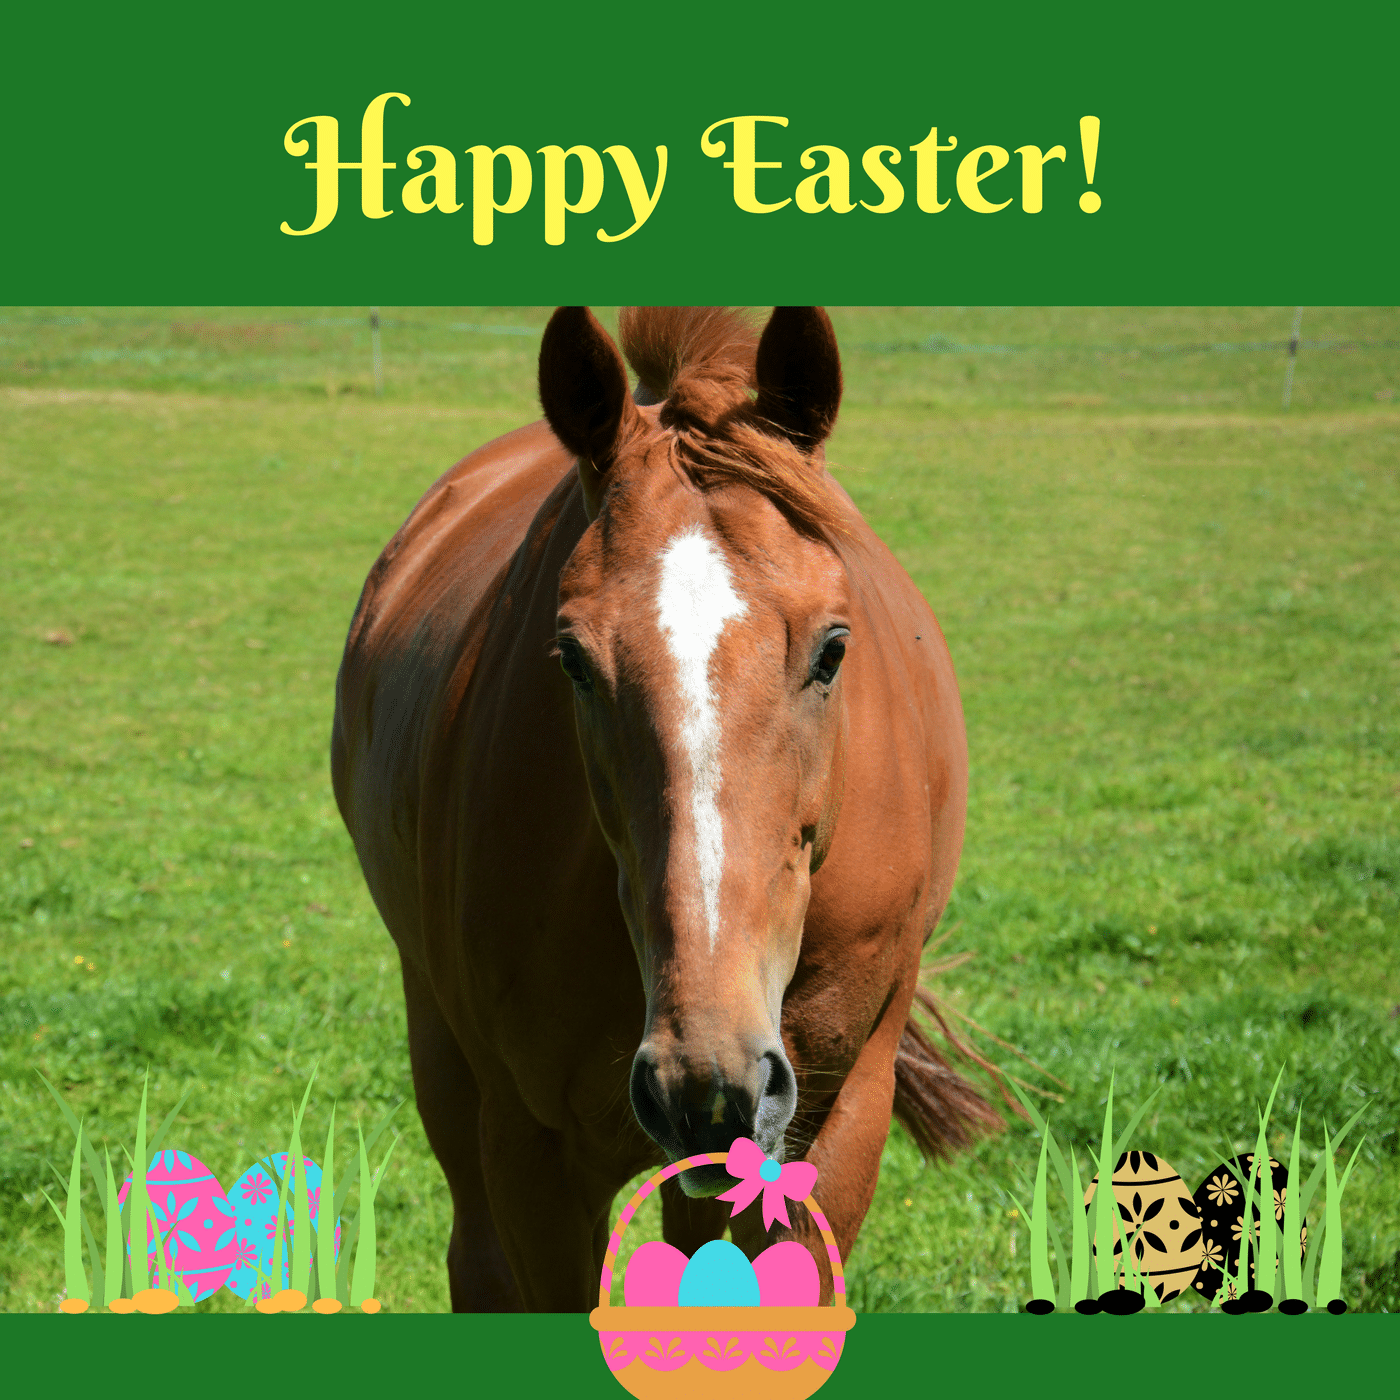 happy easter from equipepper